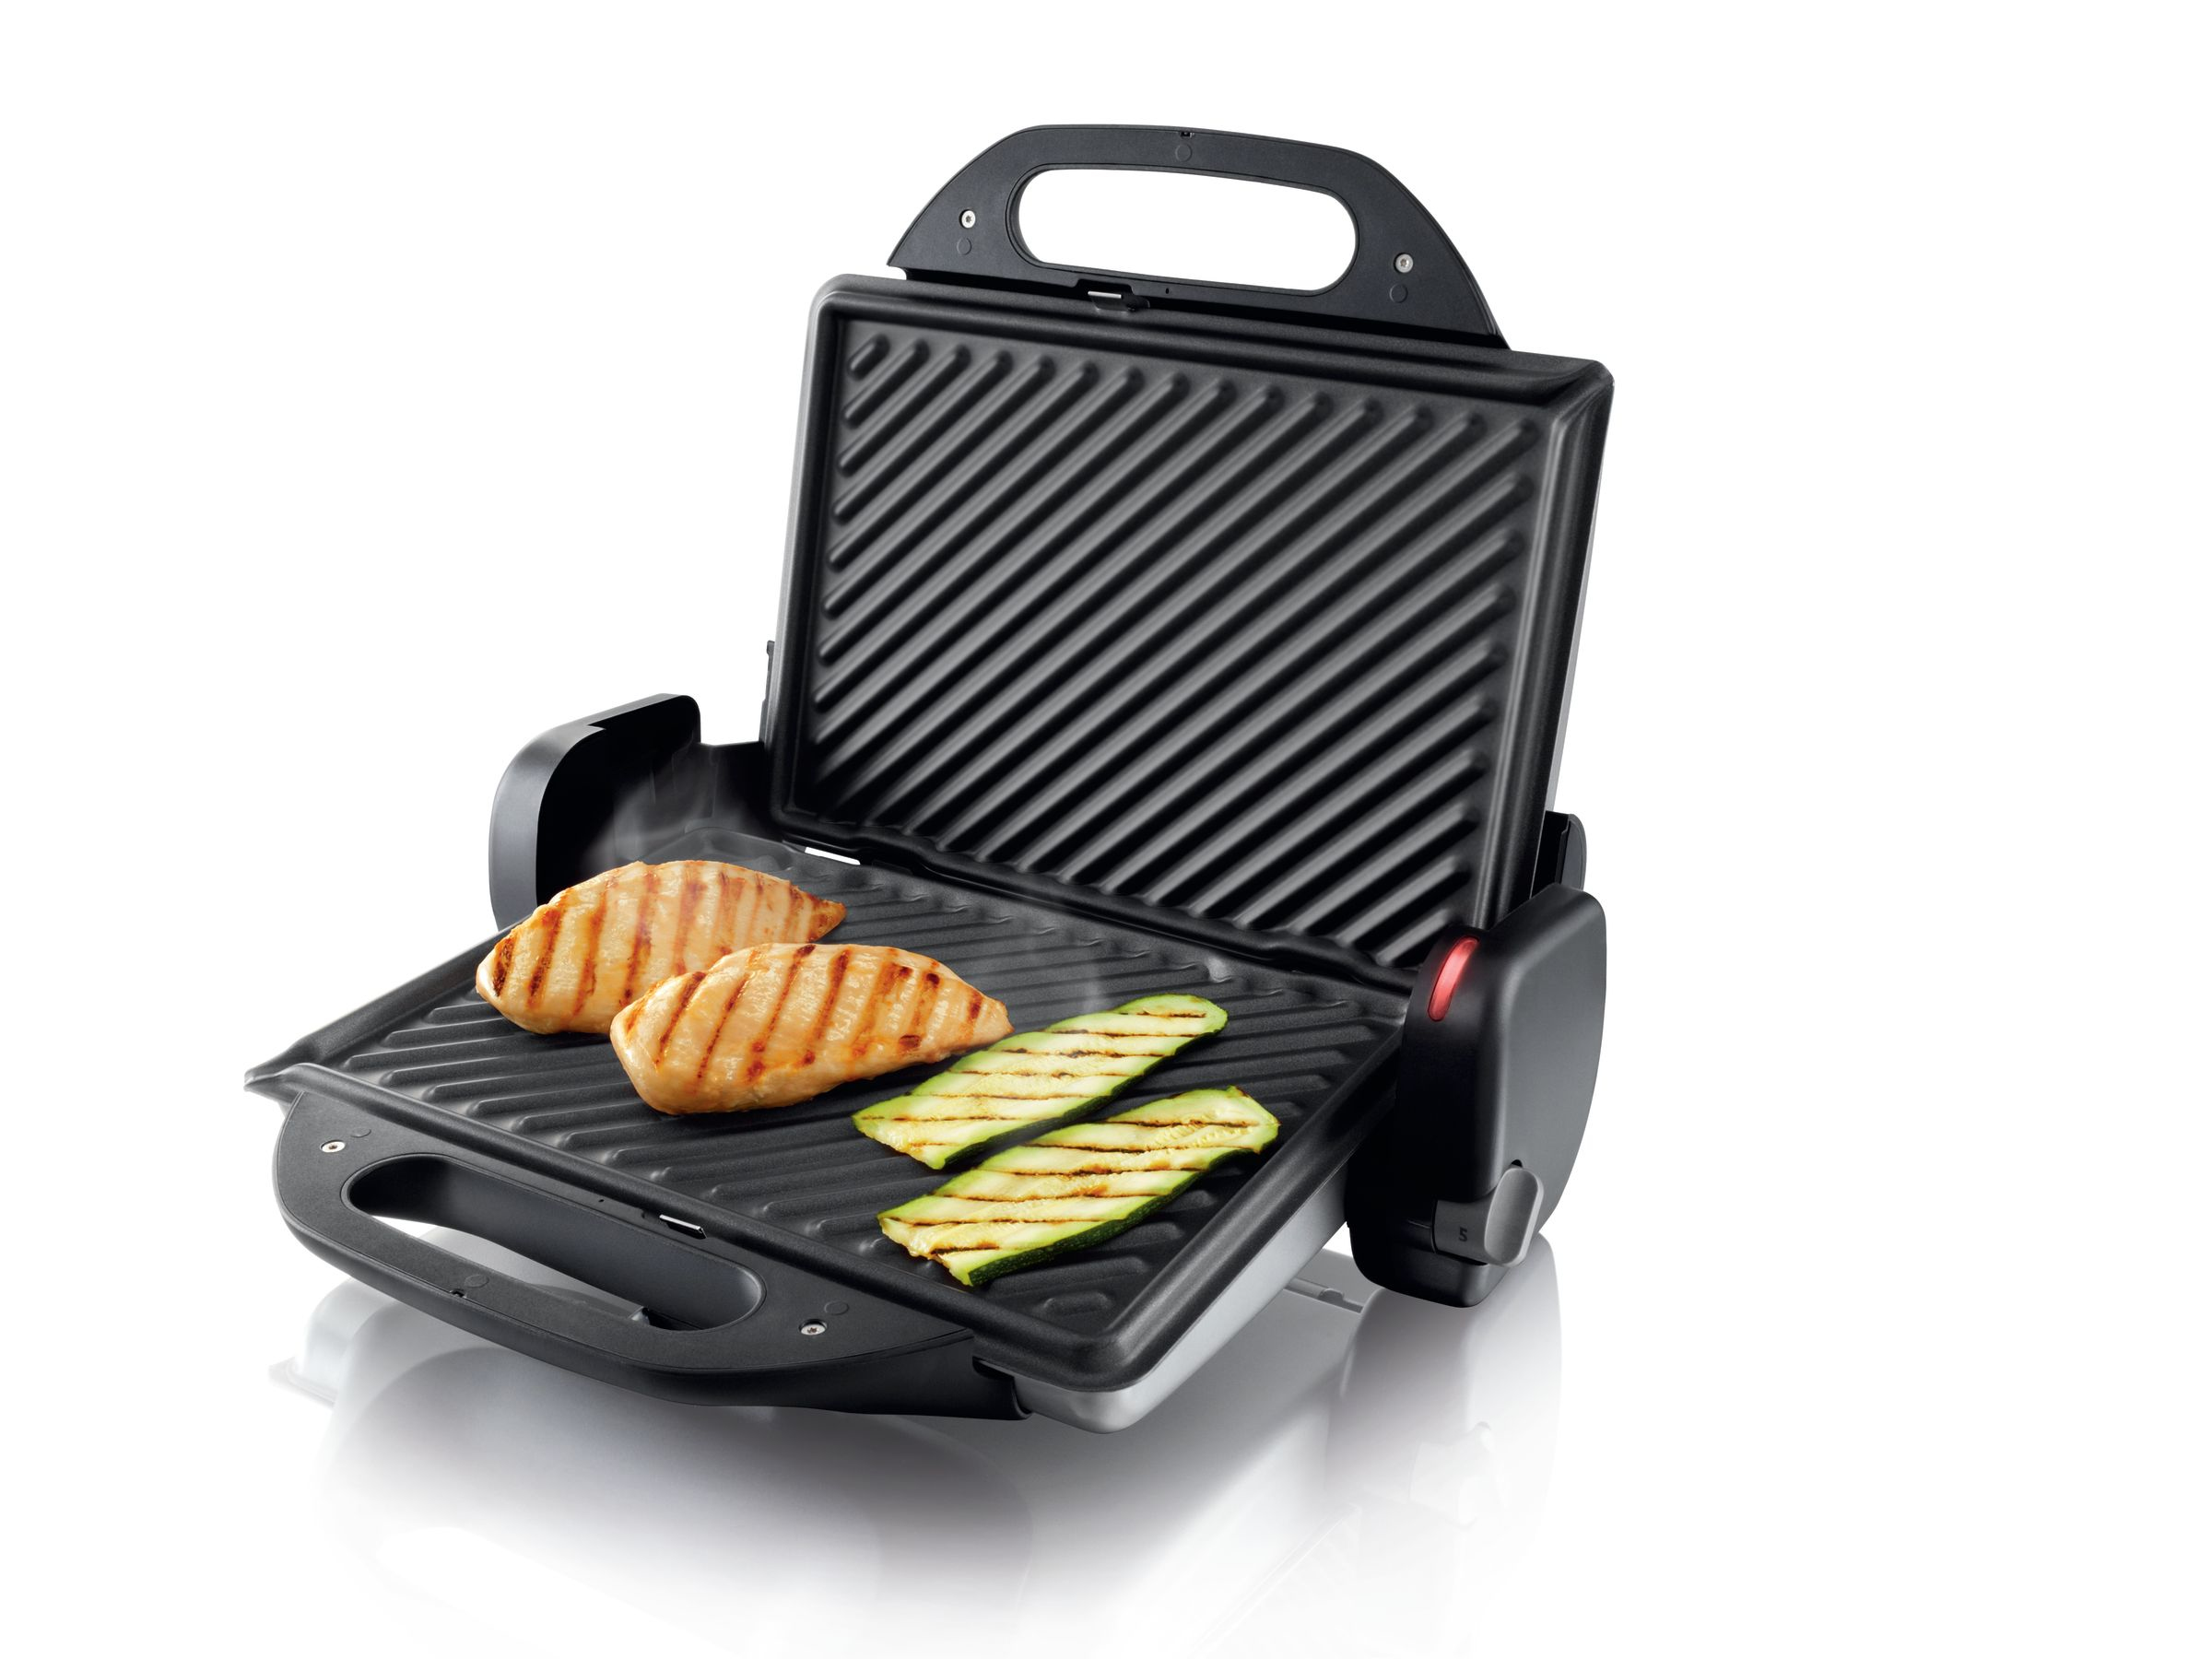 Philips Grill Tabletop Electric